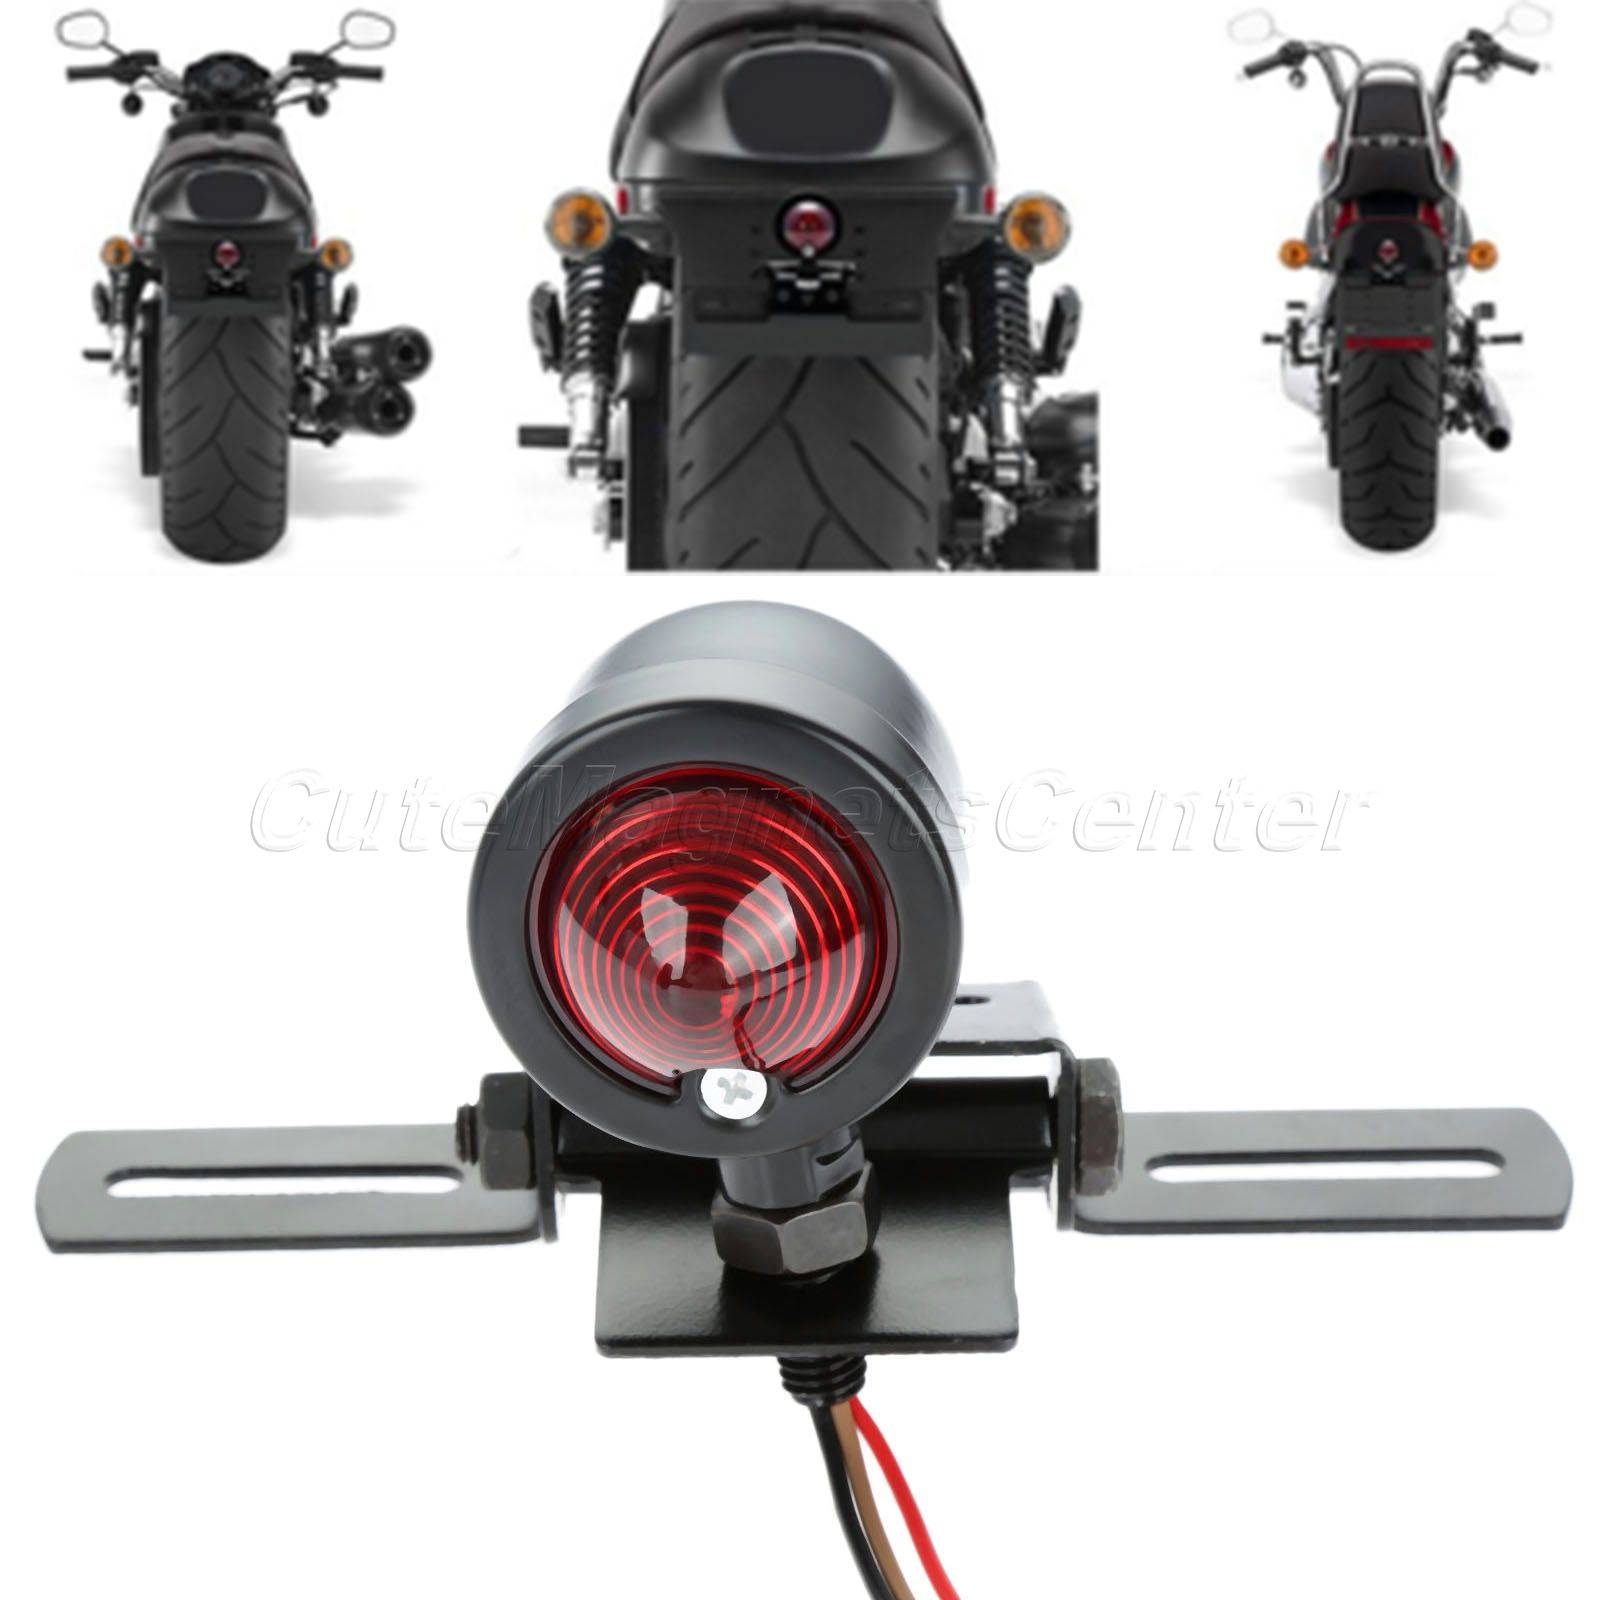 Red 12V Motorcycle Tail Light Brake with License Plate Holder Black for Harley Bobber Cafe Racer Motorcycle for 10mm Screw Bolts(China (Mainland))